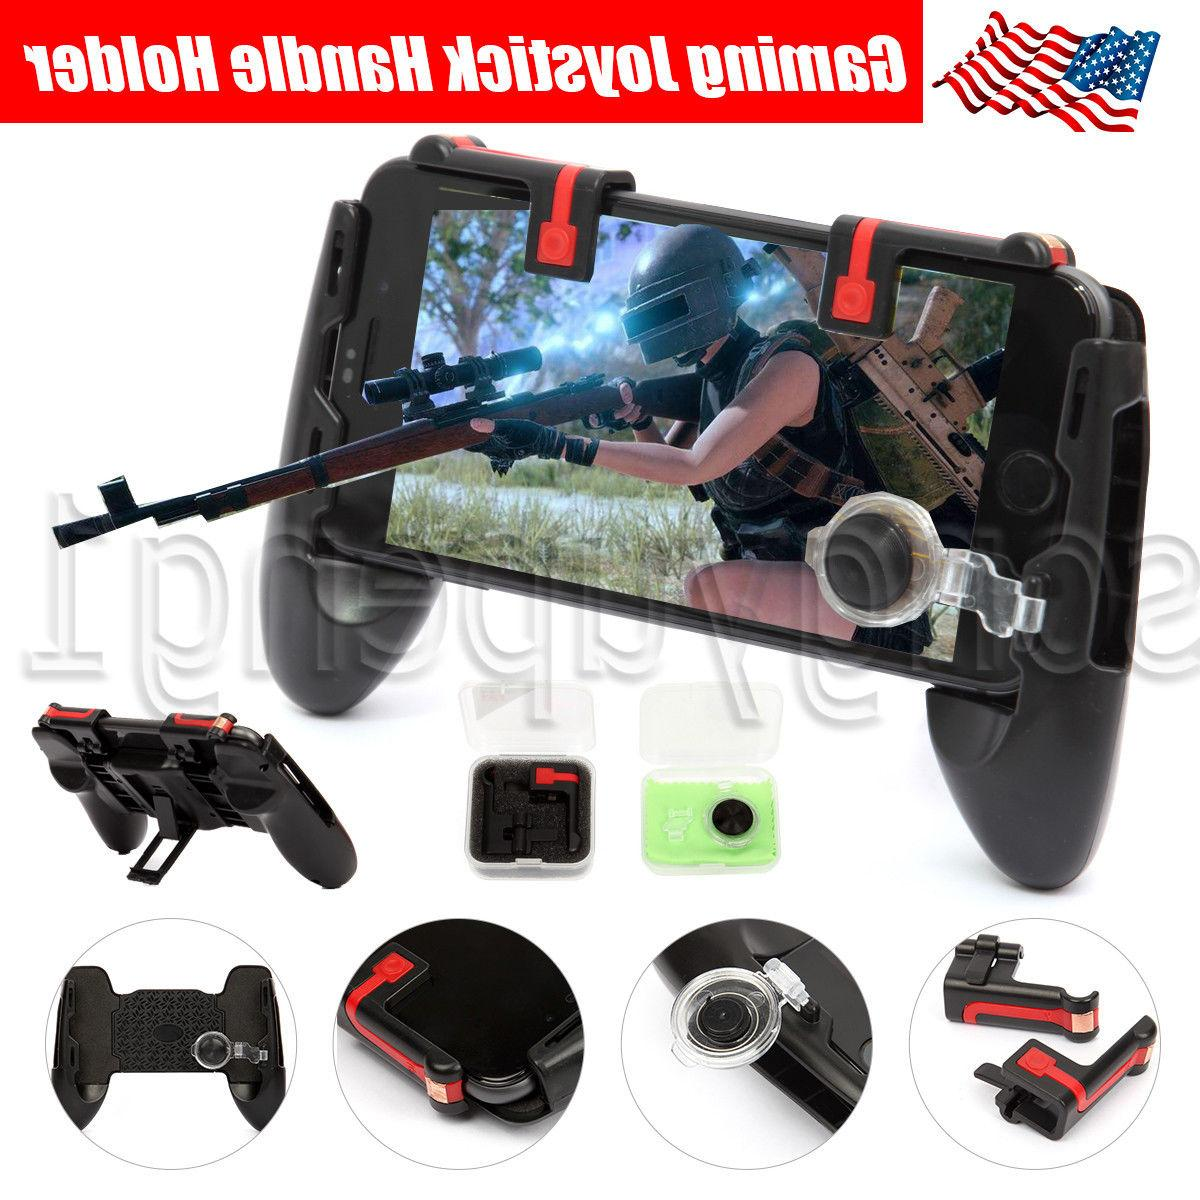 pubg mobile phone gaming trigger fire button